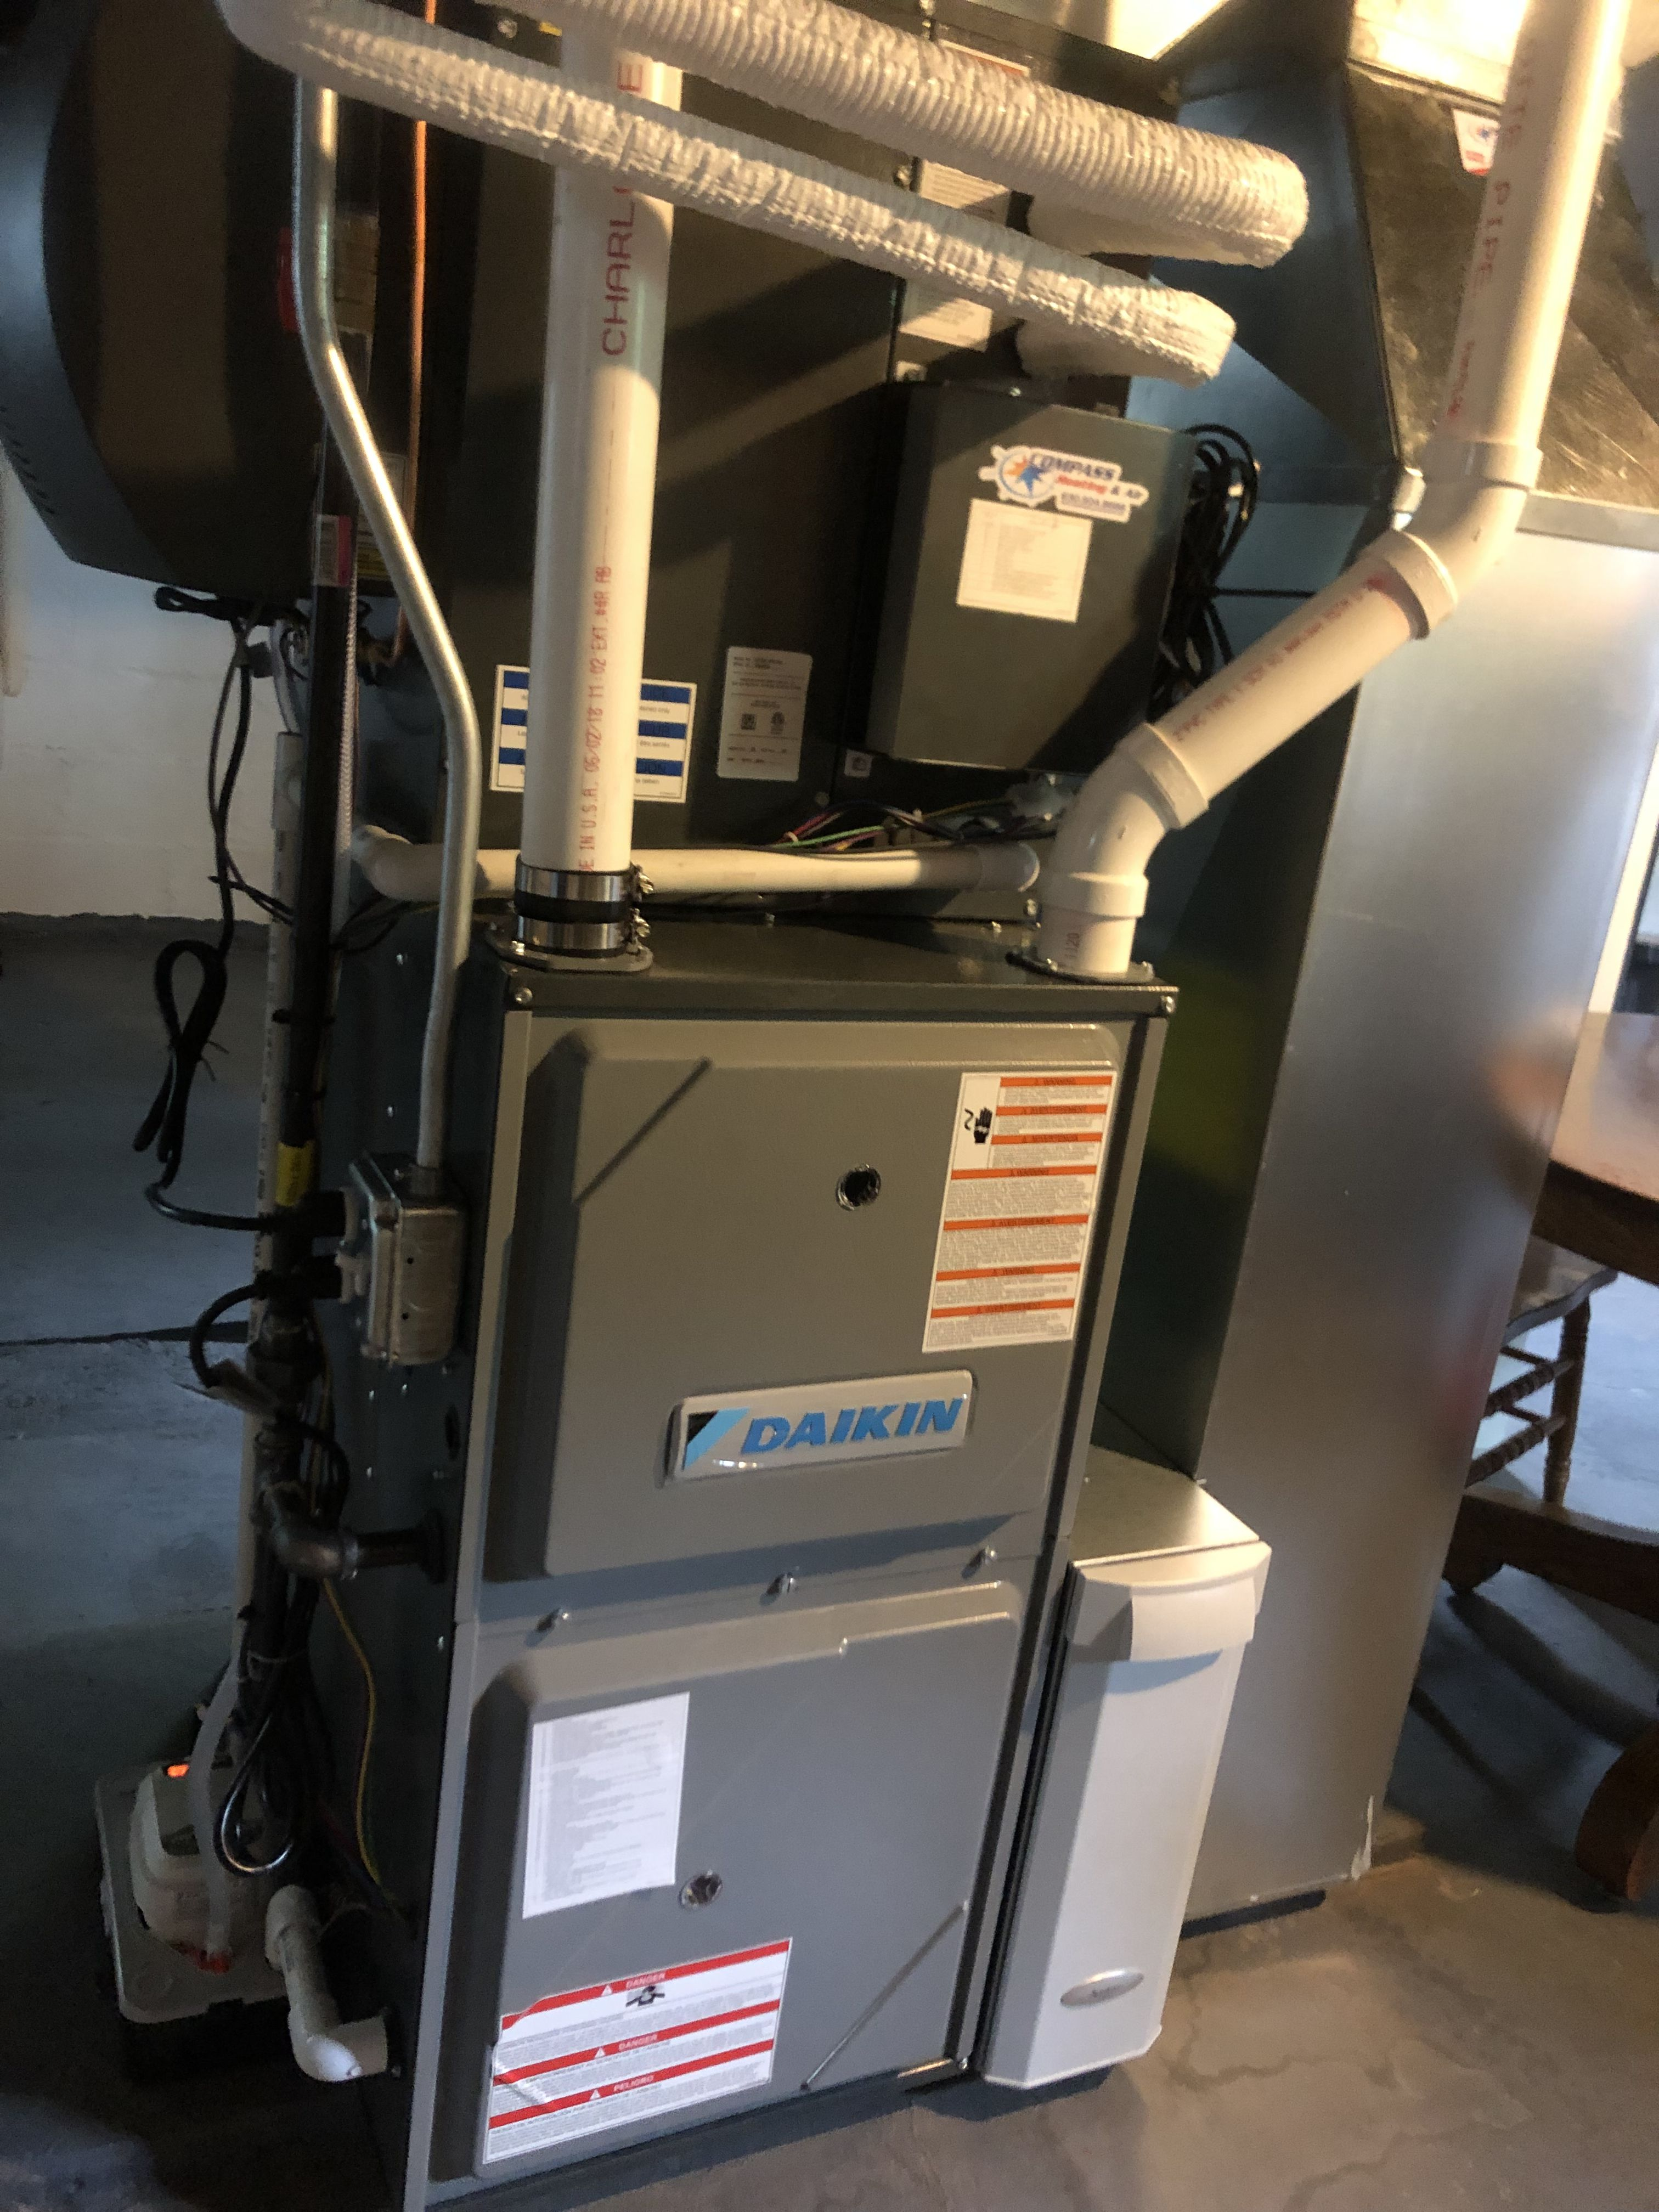 Daikin Vrv Life System With Modulating Gas Furnace Heating And